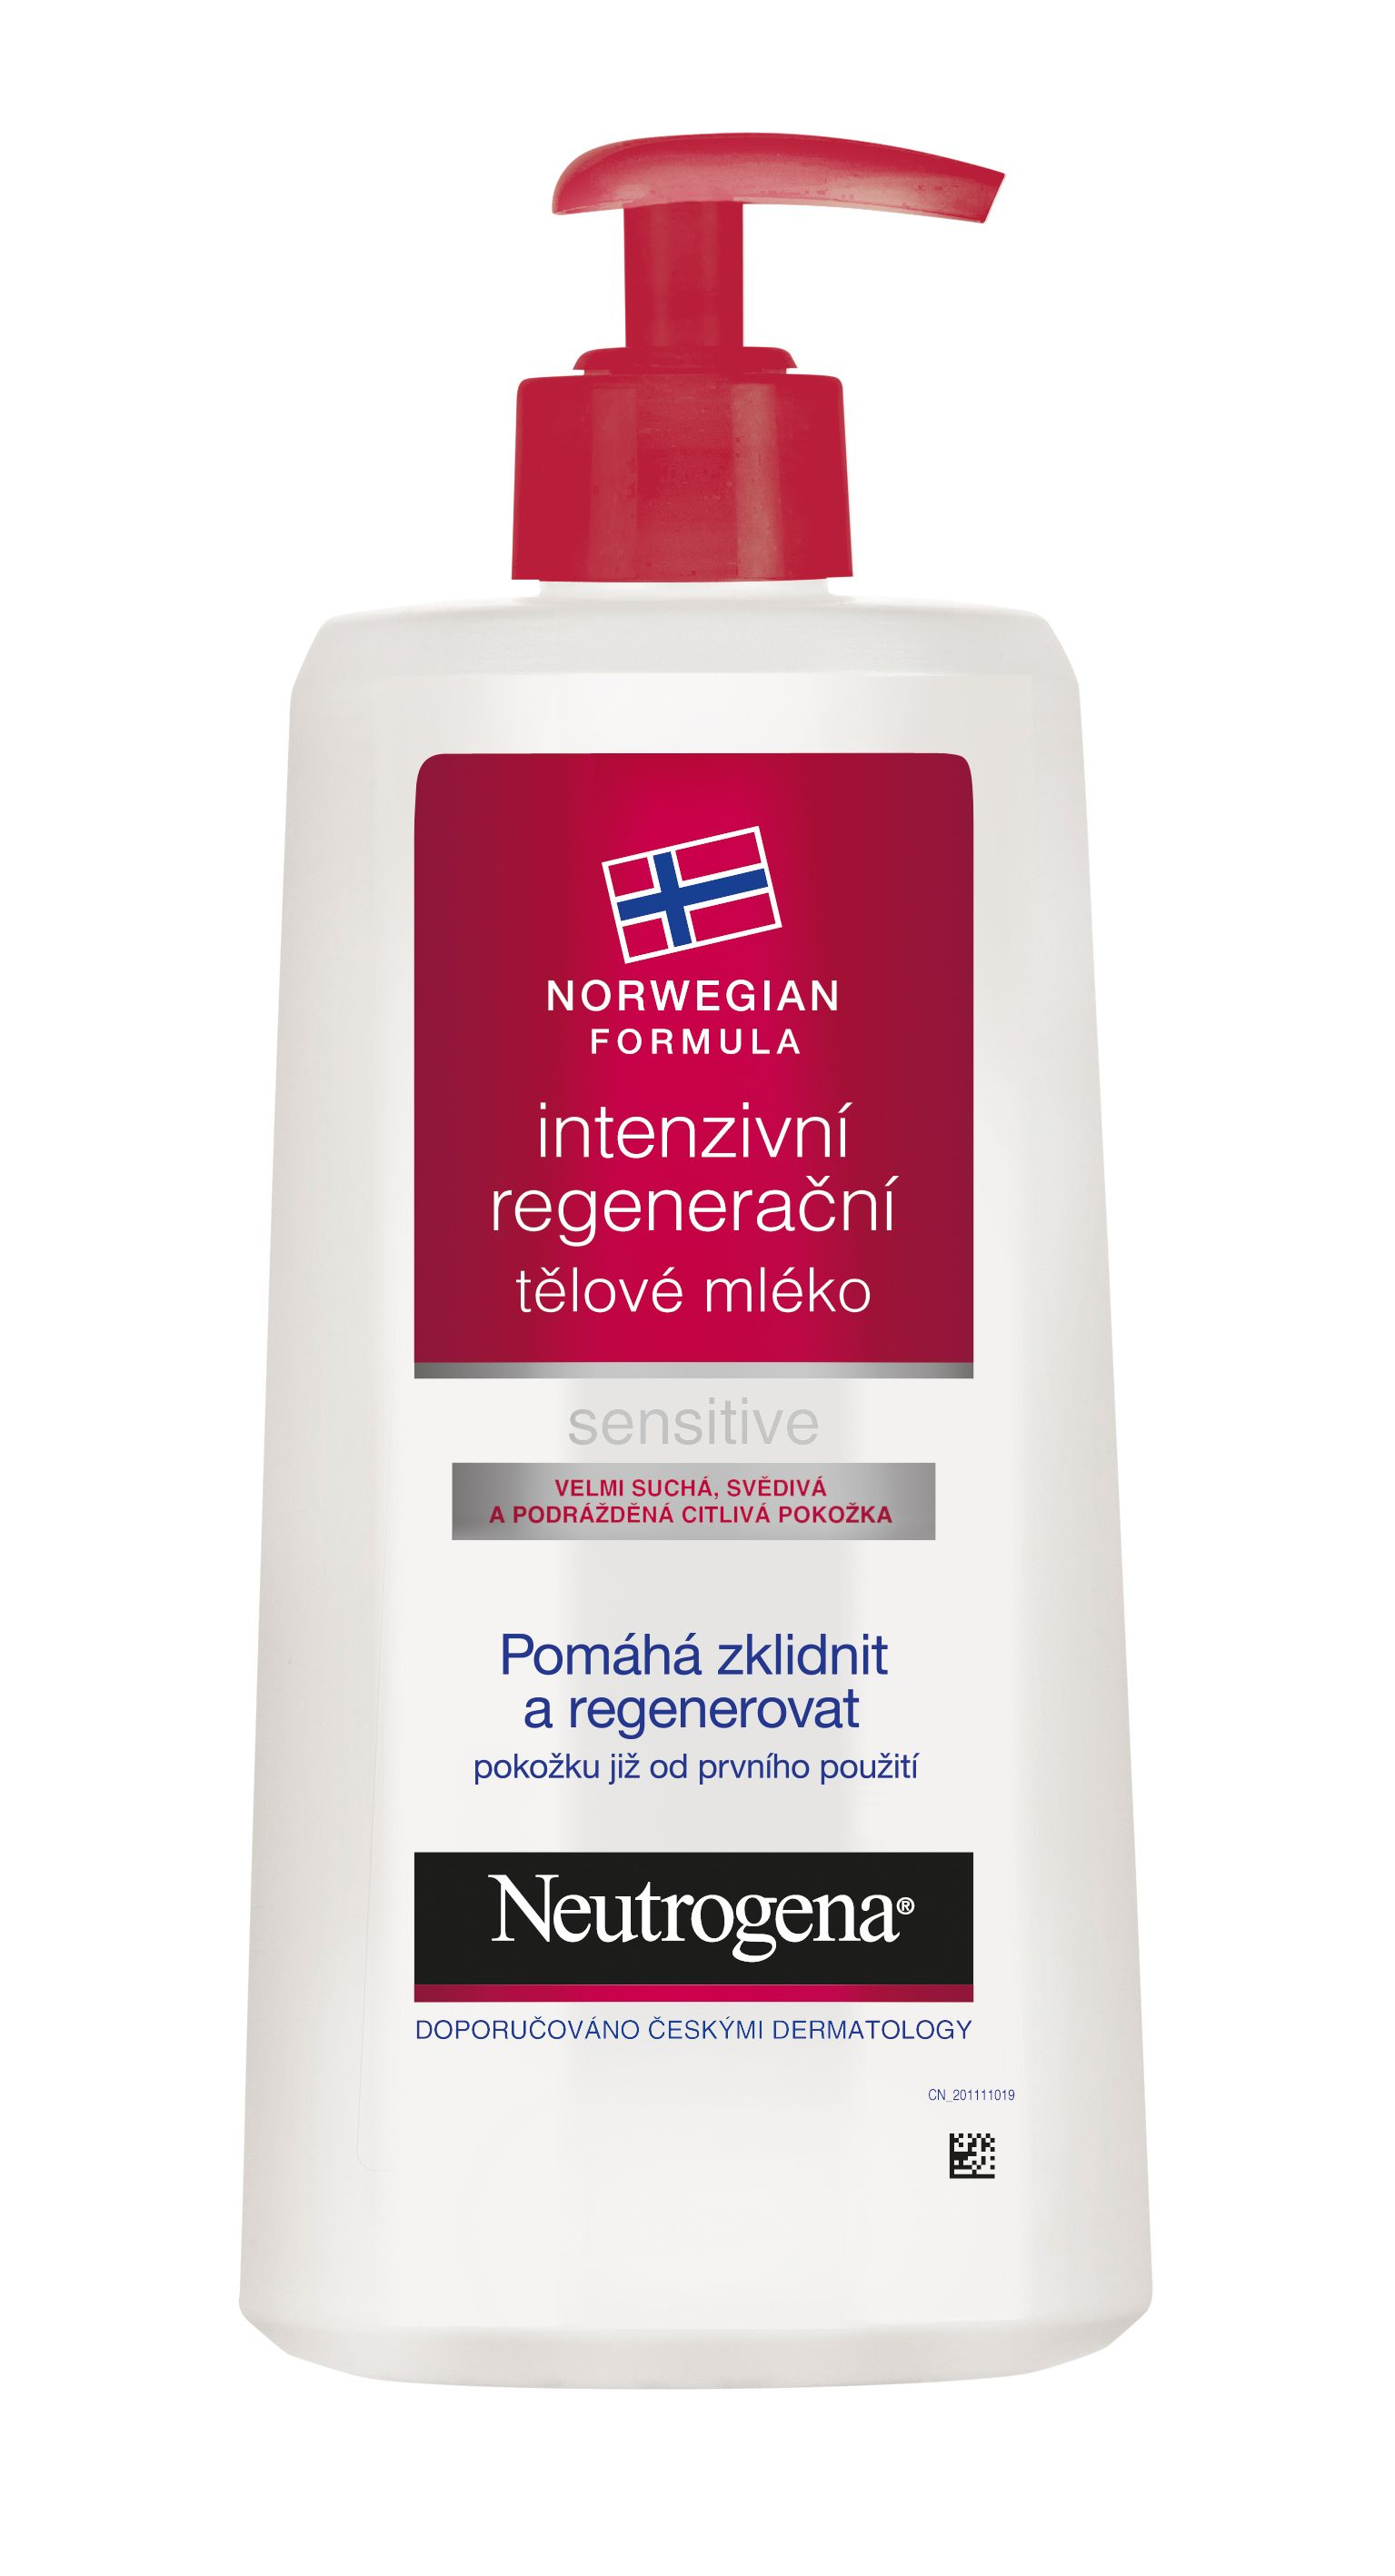 NEUTROGENA intenzivni regeneracni telove mleko sensitive red